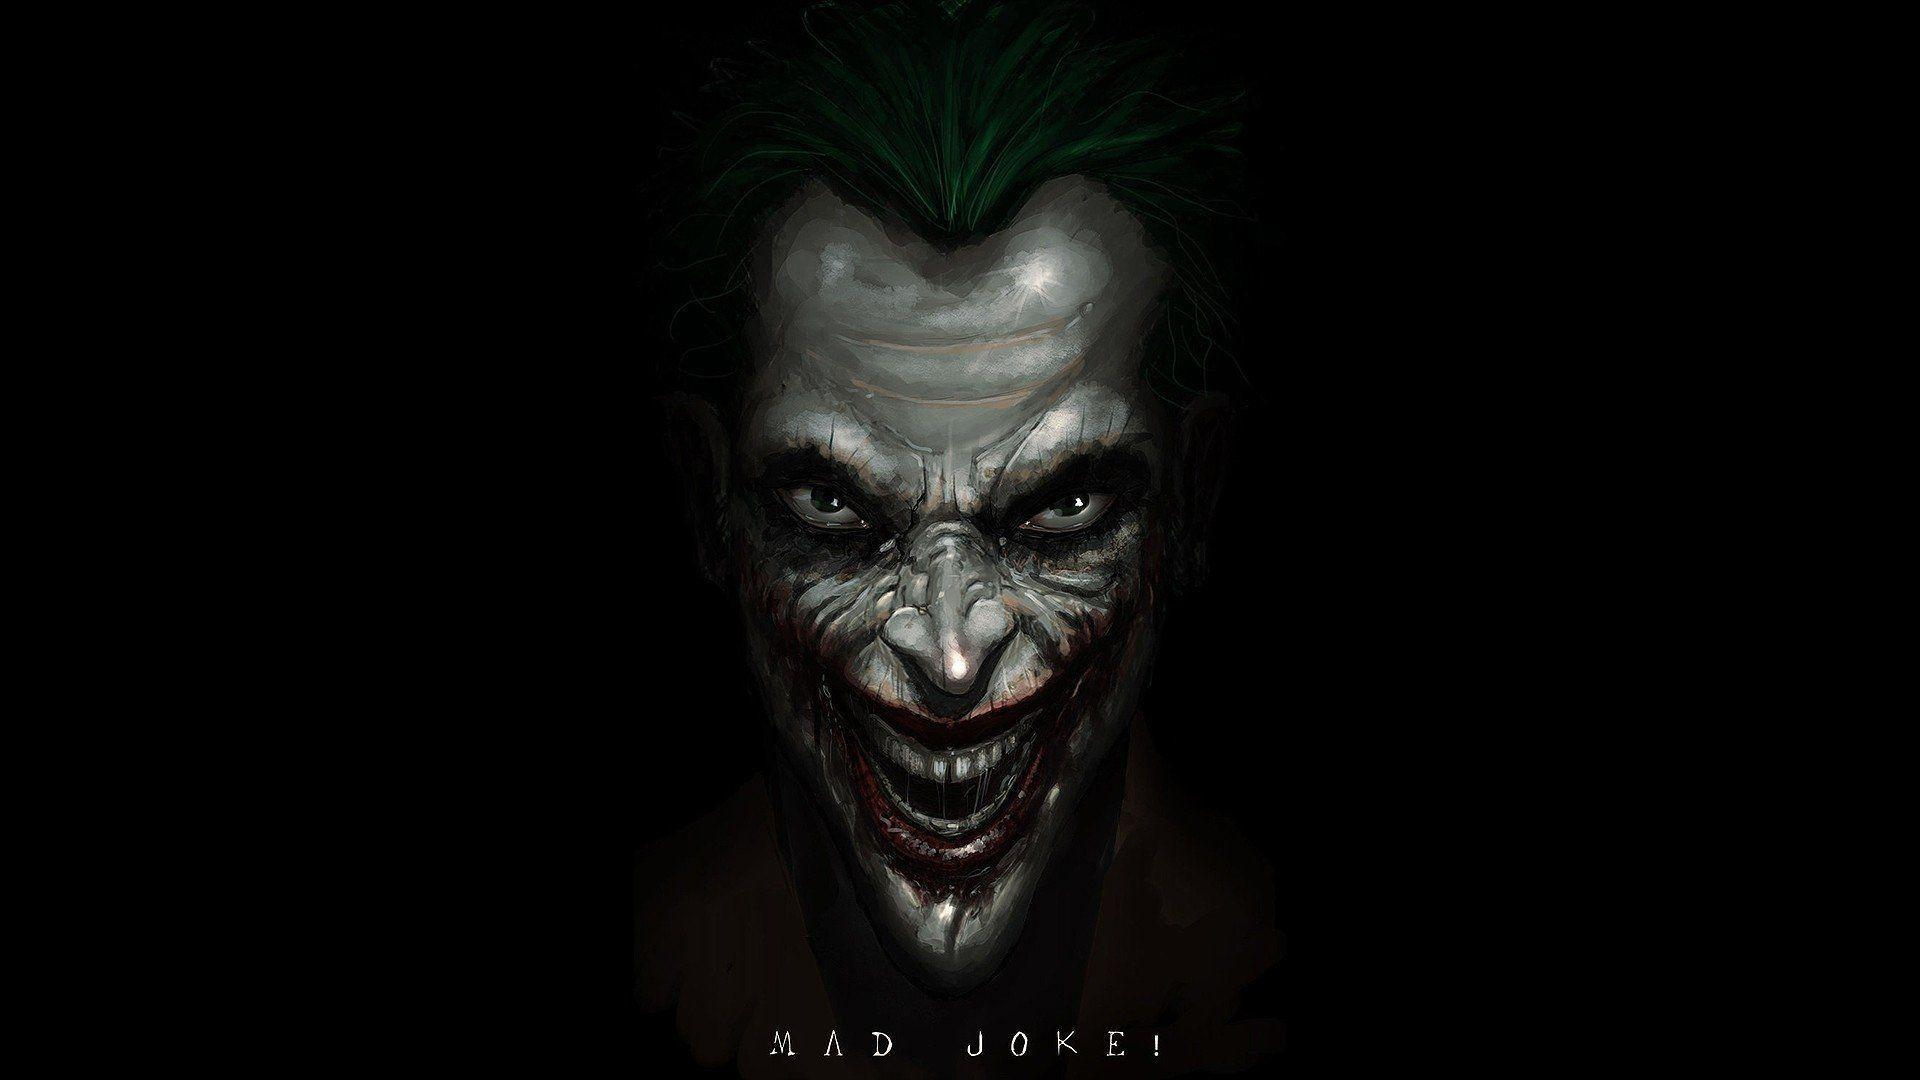 73 Joker HD Wallpapers | Backgrounds - Wallpaper Abyss